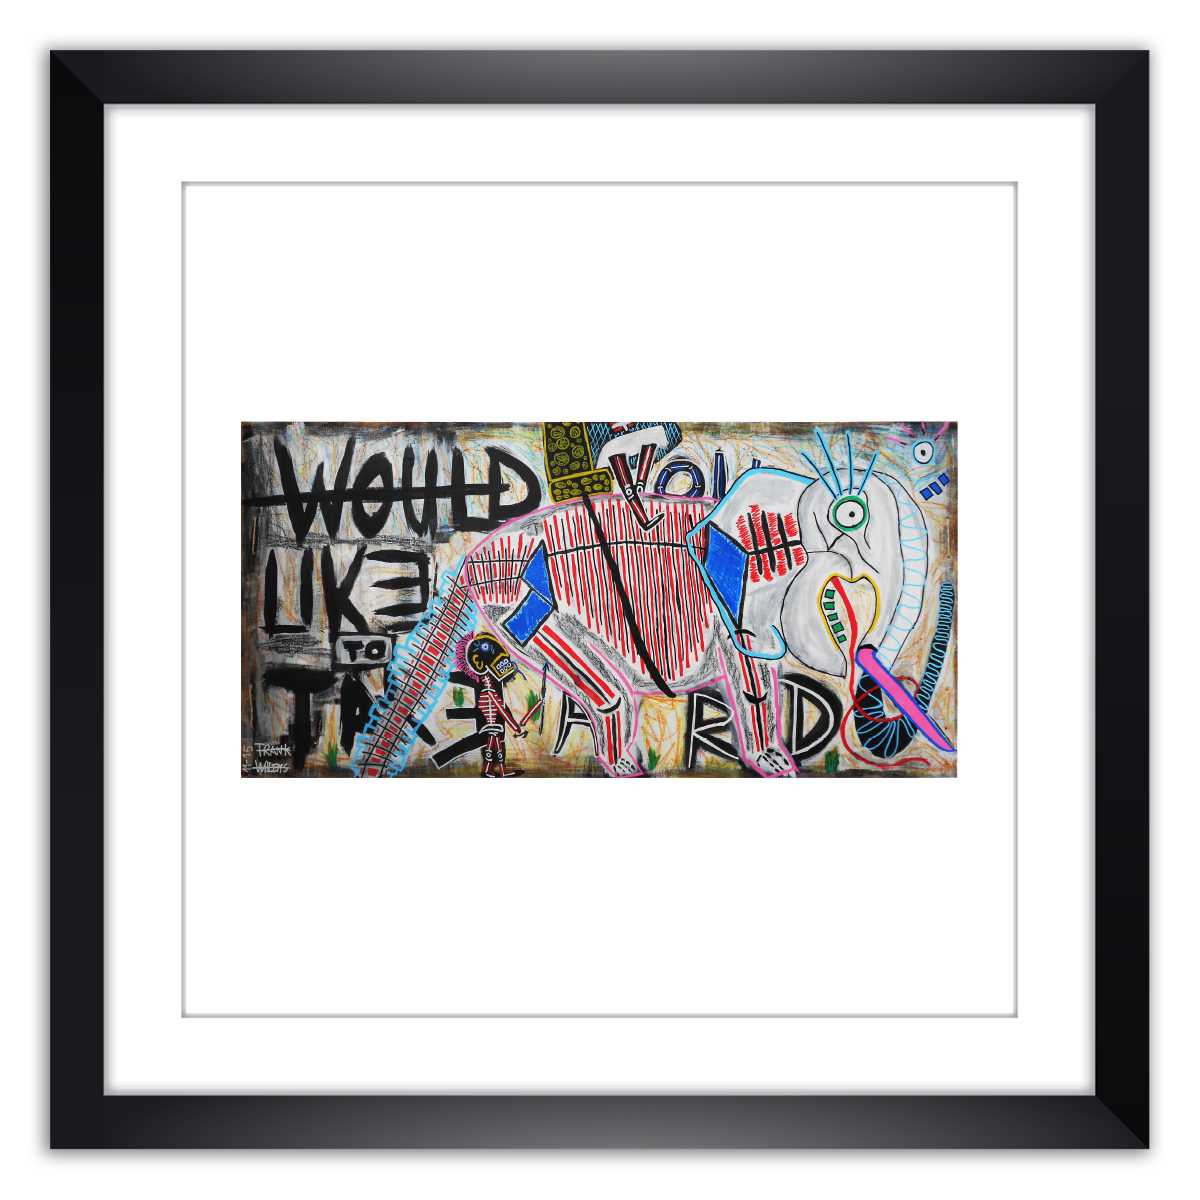 Limited prints - WOULD YOU LIKE TO TAKE A RIDE framed - Frank Willems